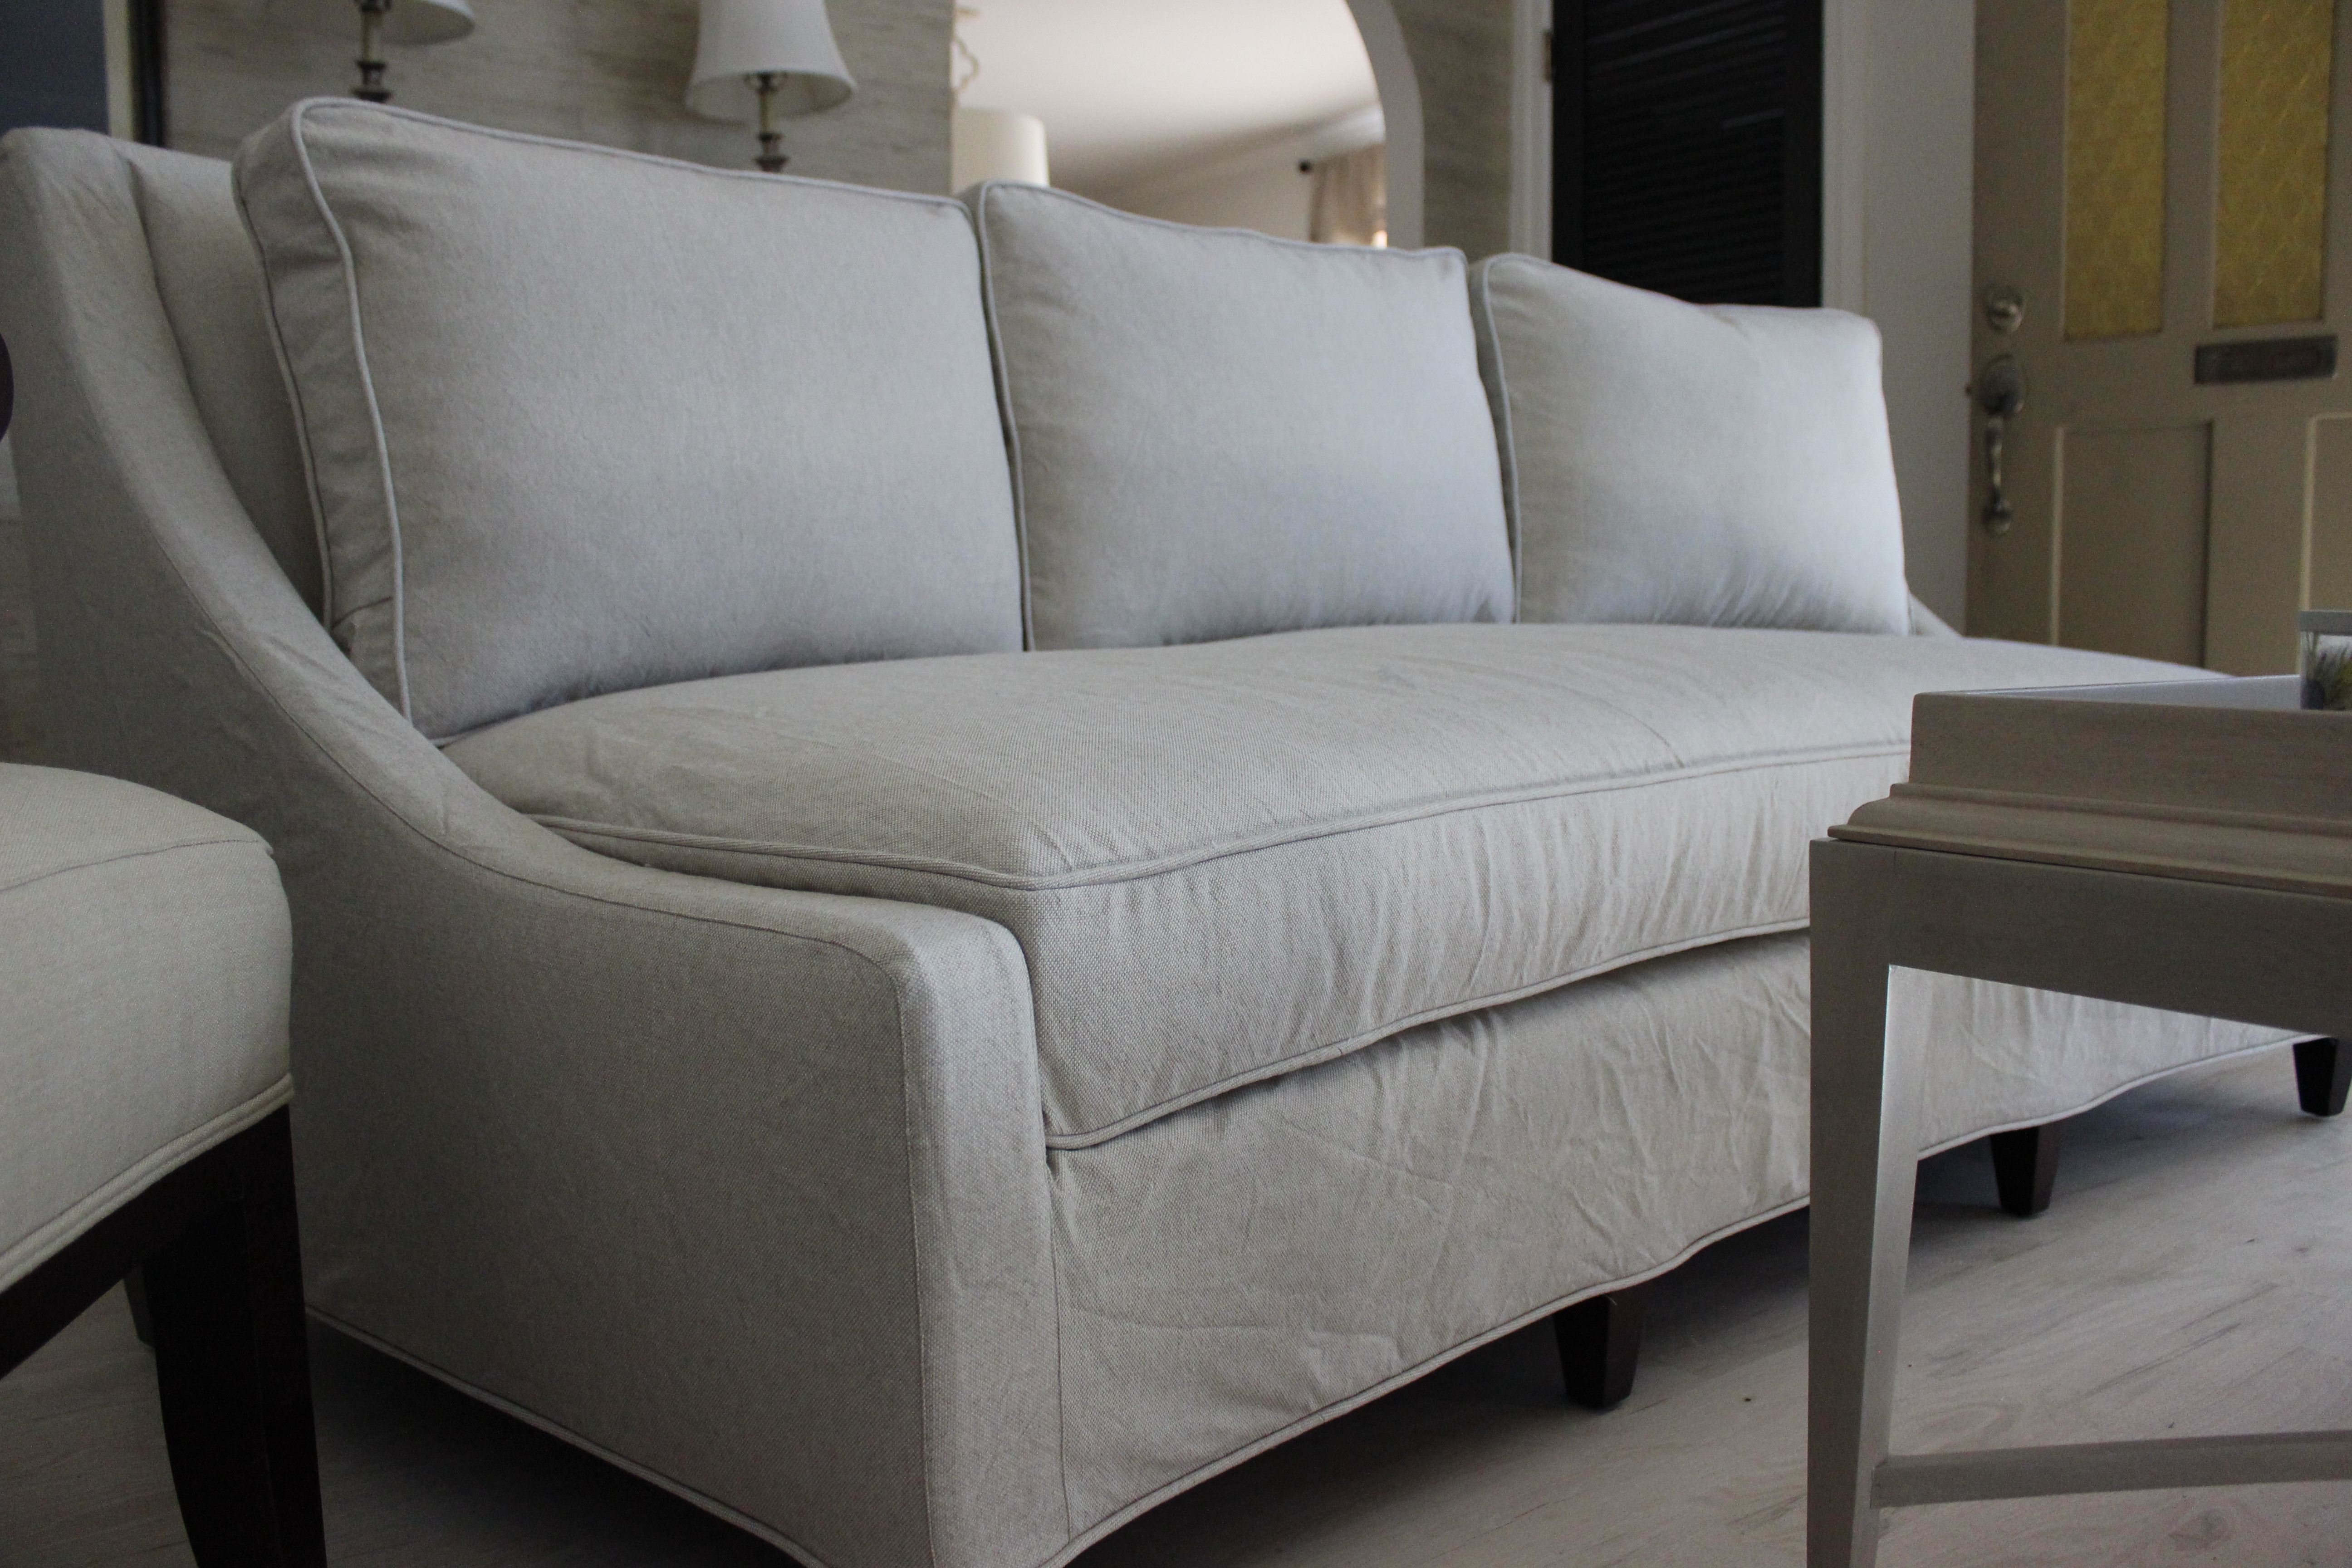 Bent couch slipcover Slipcovers by Shelley